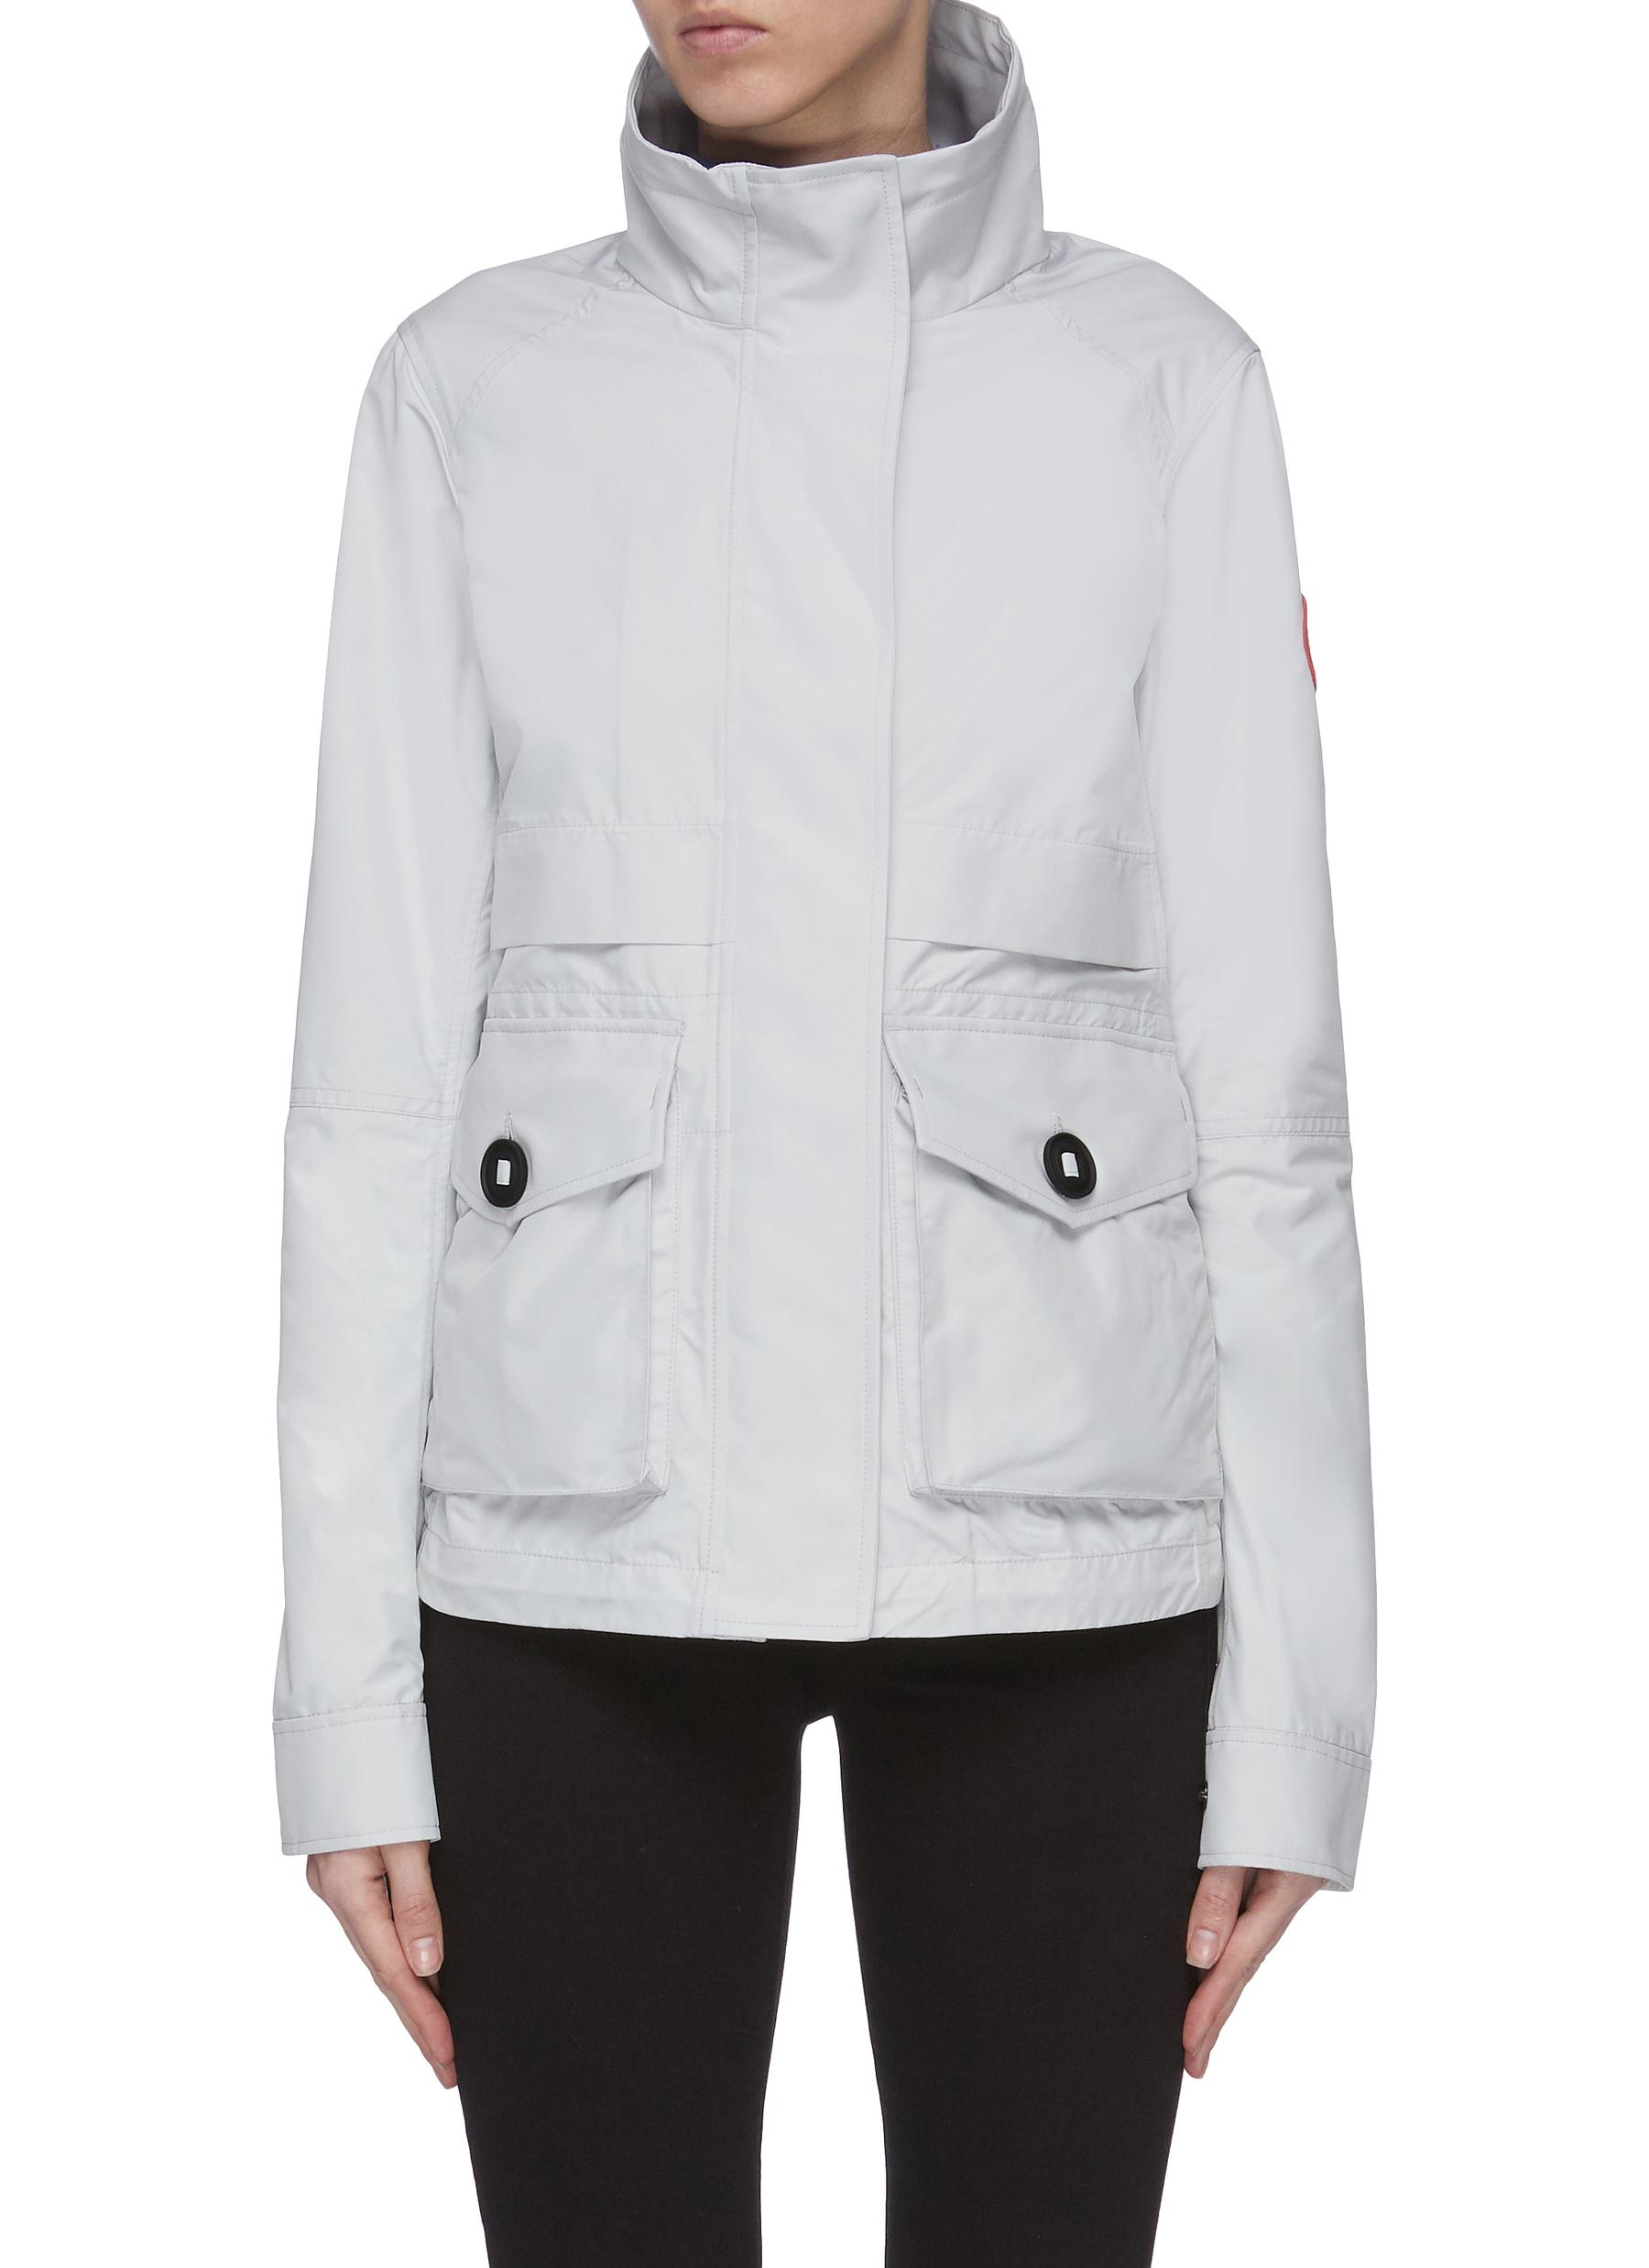 Buy Canada Goose Jackets 'Elmira' windbreaker jacket